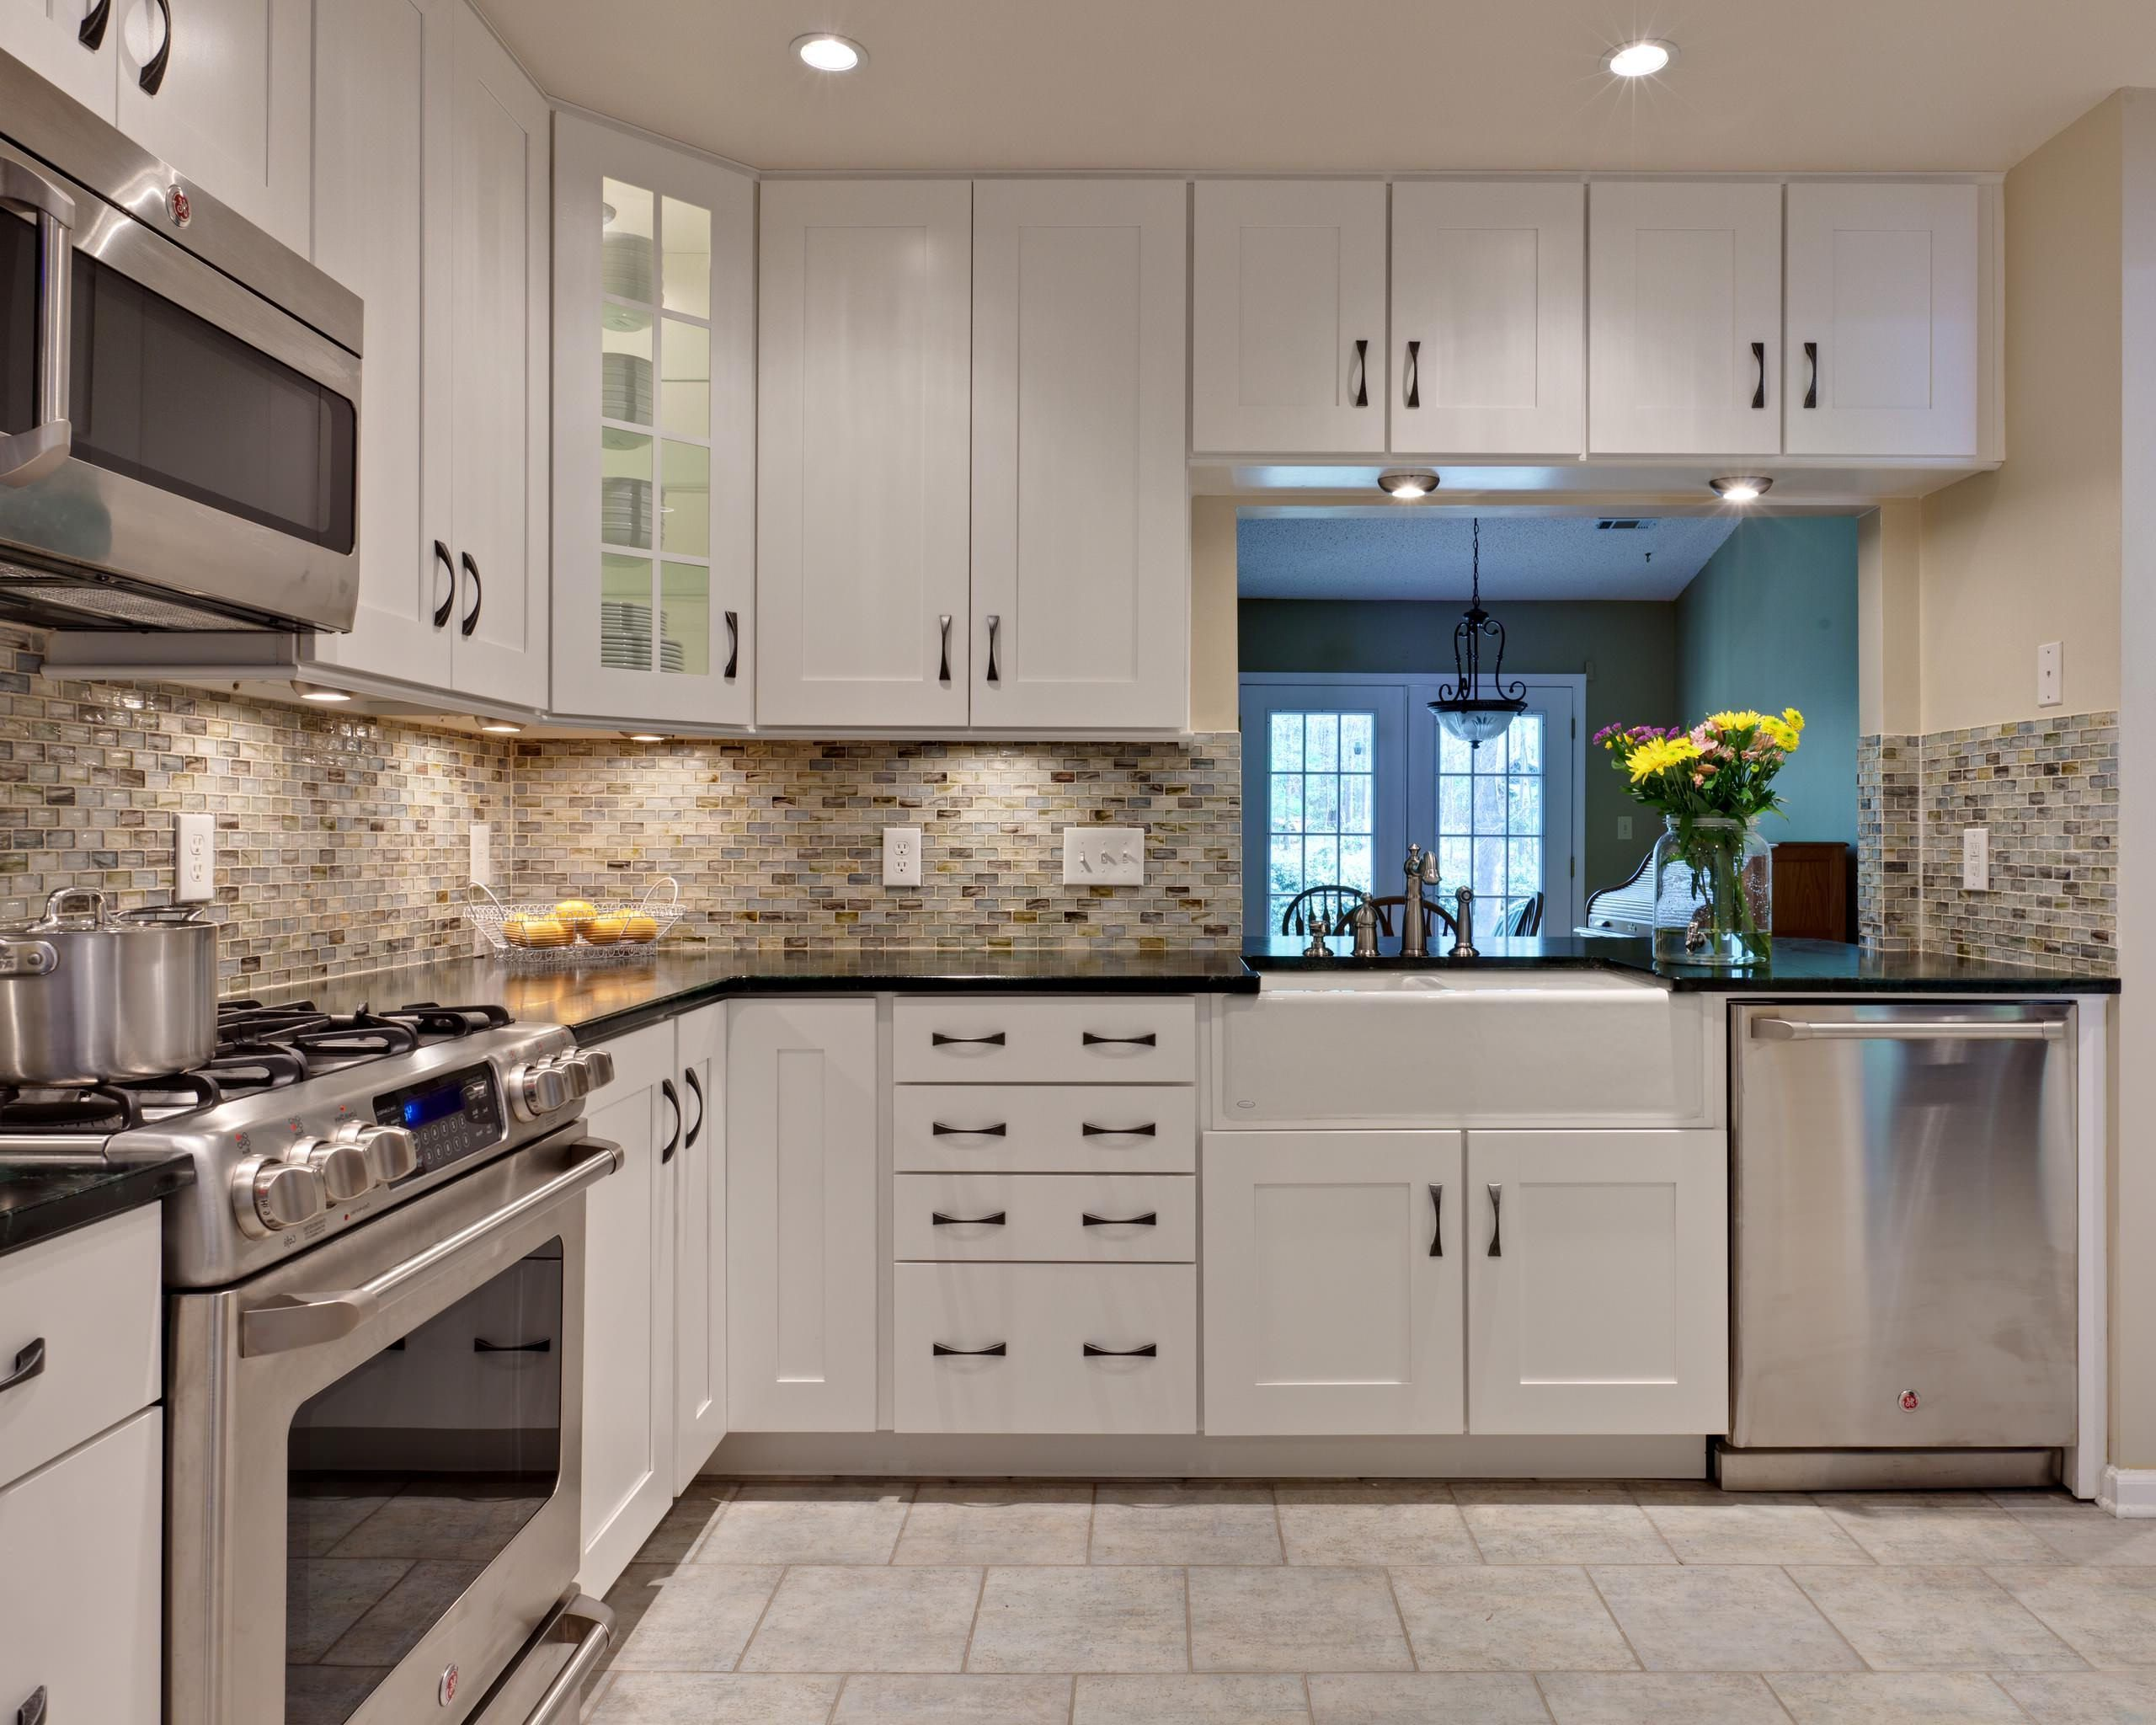 Kitchen Backsplashes White Kitchen Cabinet Ceramic Backsplash Cabinets Rectangle Small Kitchen Renovations Kitchen Remodel Small Kitchen Remodel Countertops